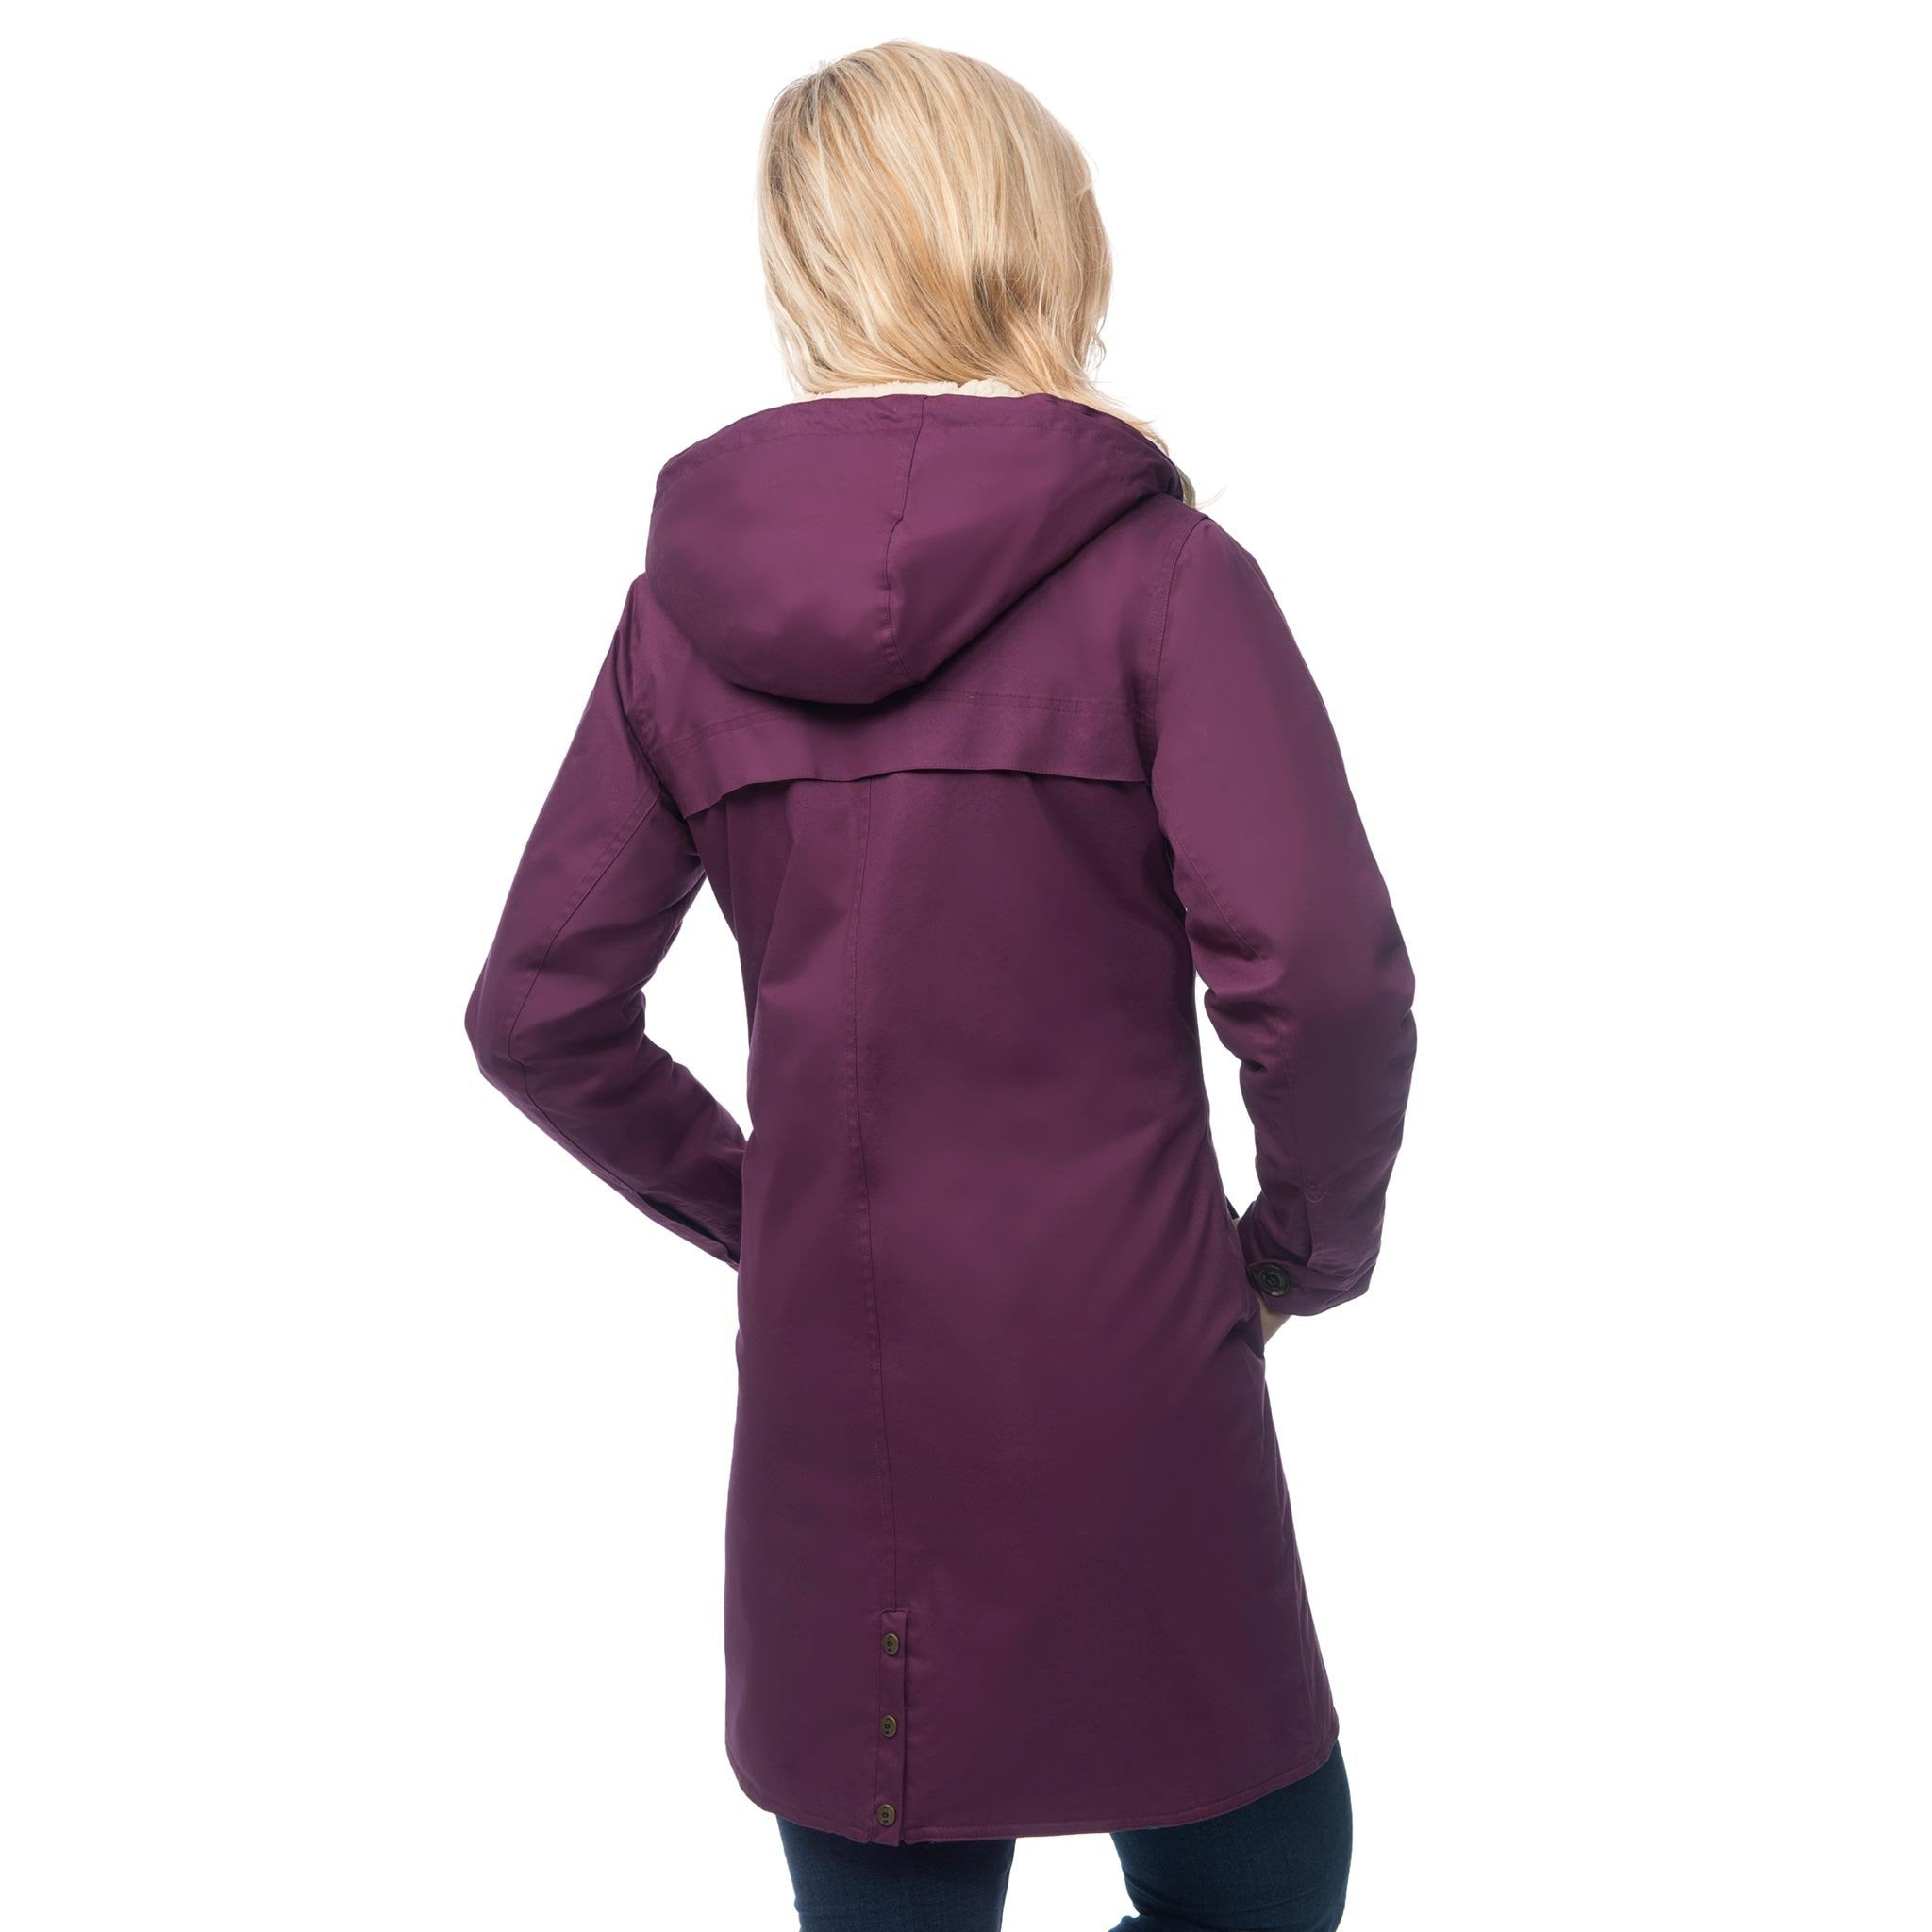 Lighthouse Womens Reva Waterproof Hooded Parka Raincoat in Plum. Showing rear vent.